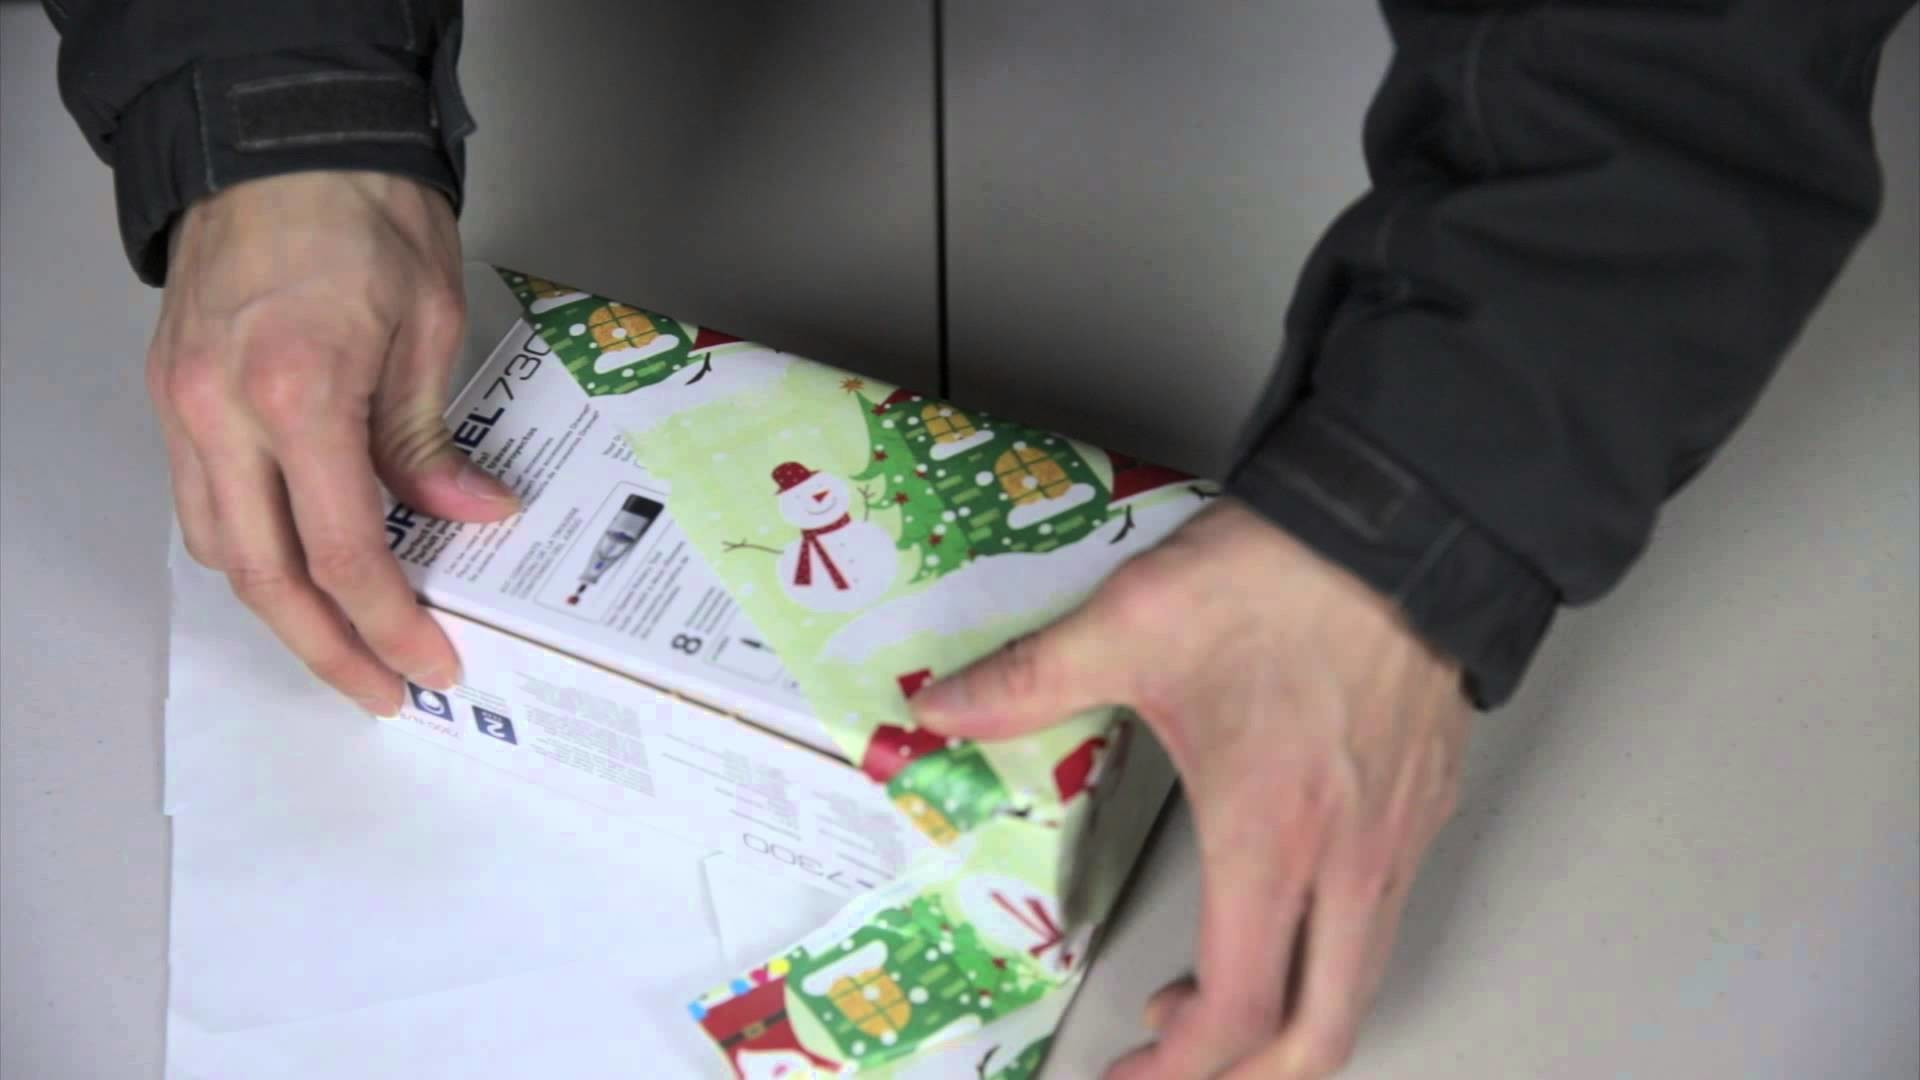 Japan Gift Wrapping Hack Explained